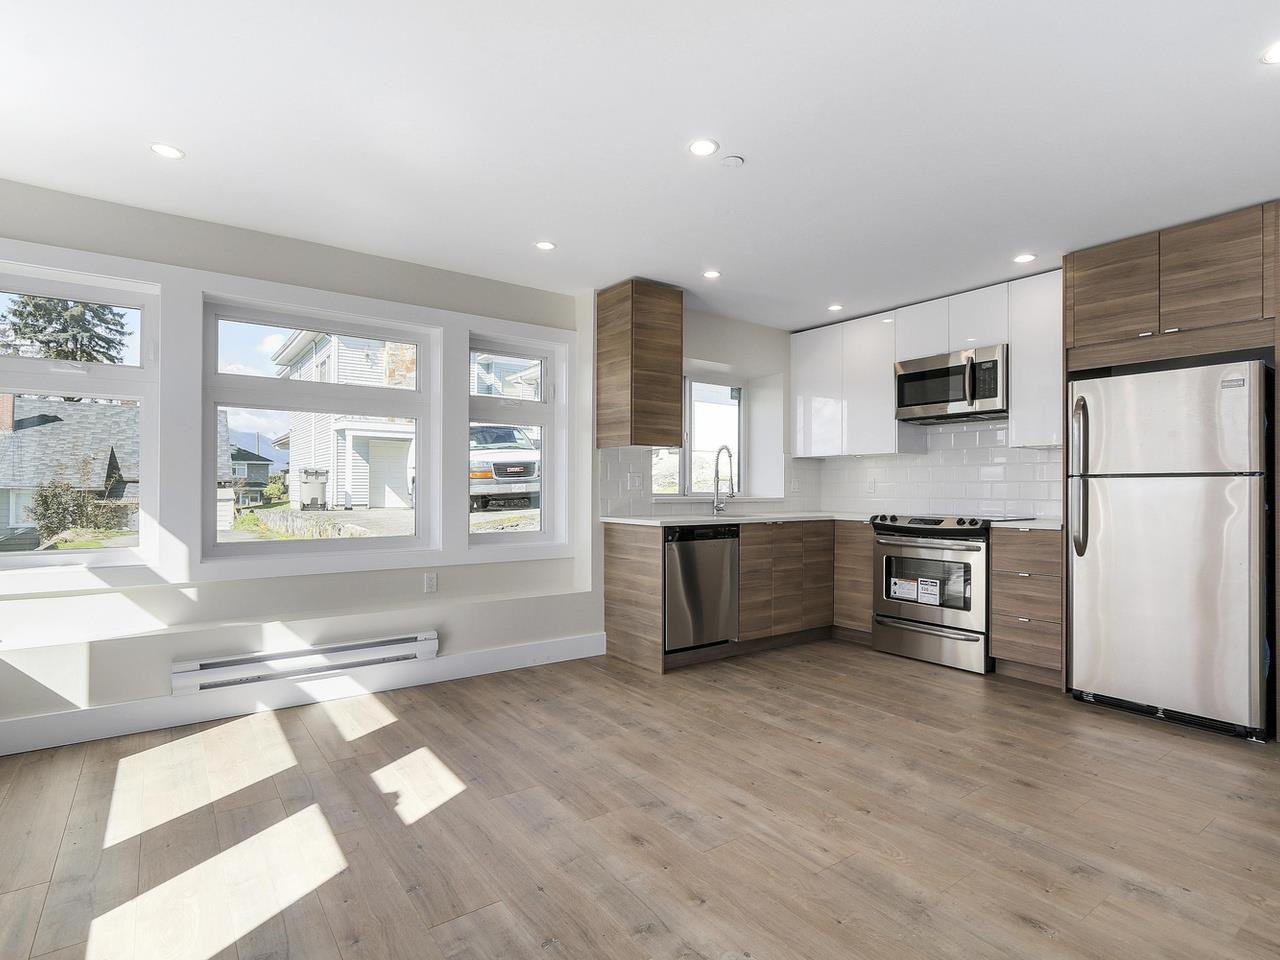 Photo 18: Photos: 3539 ETON STREET in Vancouver: Hastings East House for sale (Vancouver East)  : MLS®# R2159493